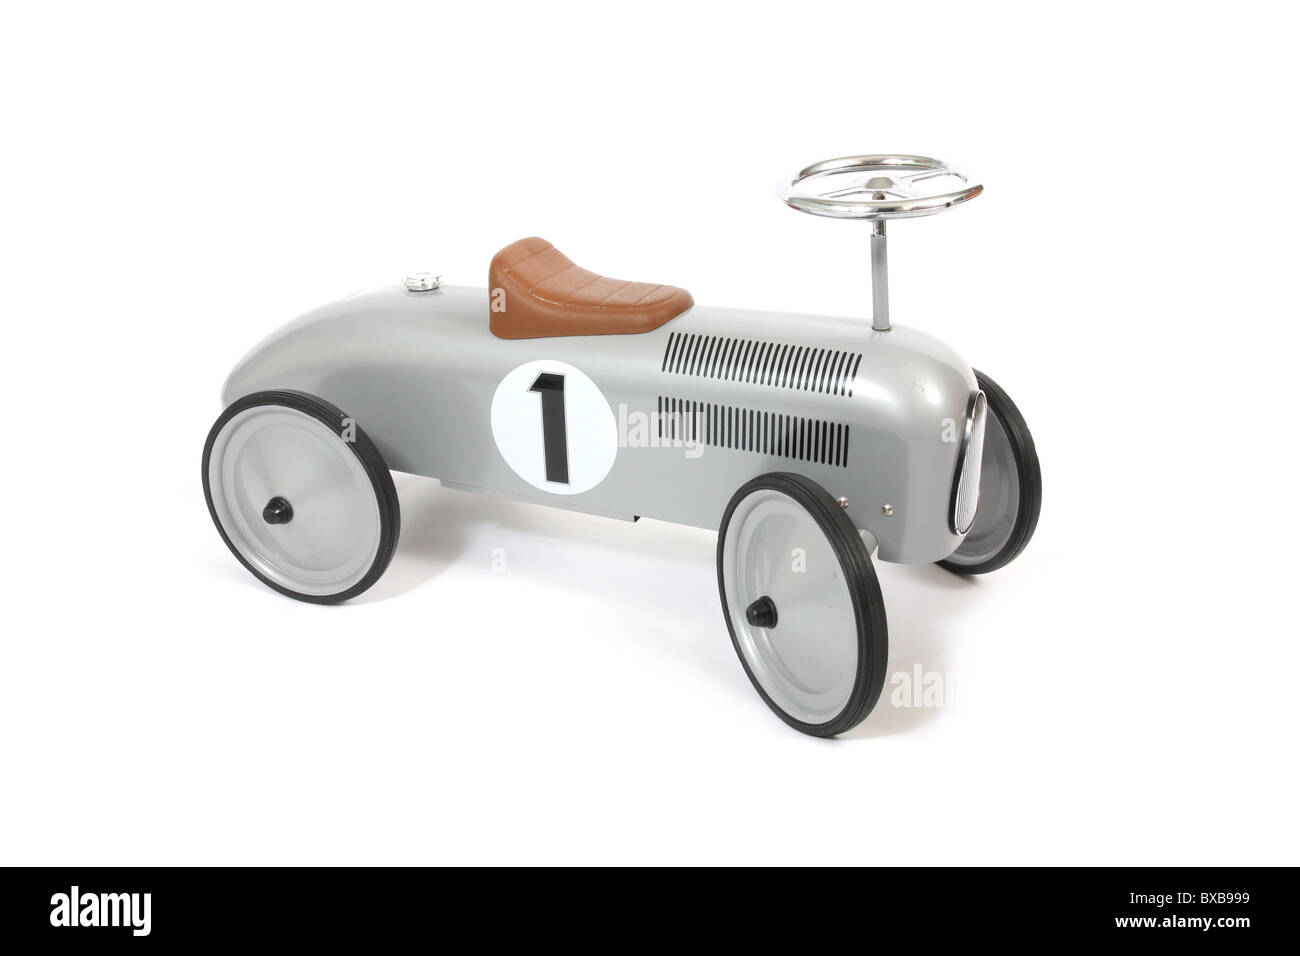 A child's life size toy car. - Stock Image